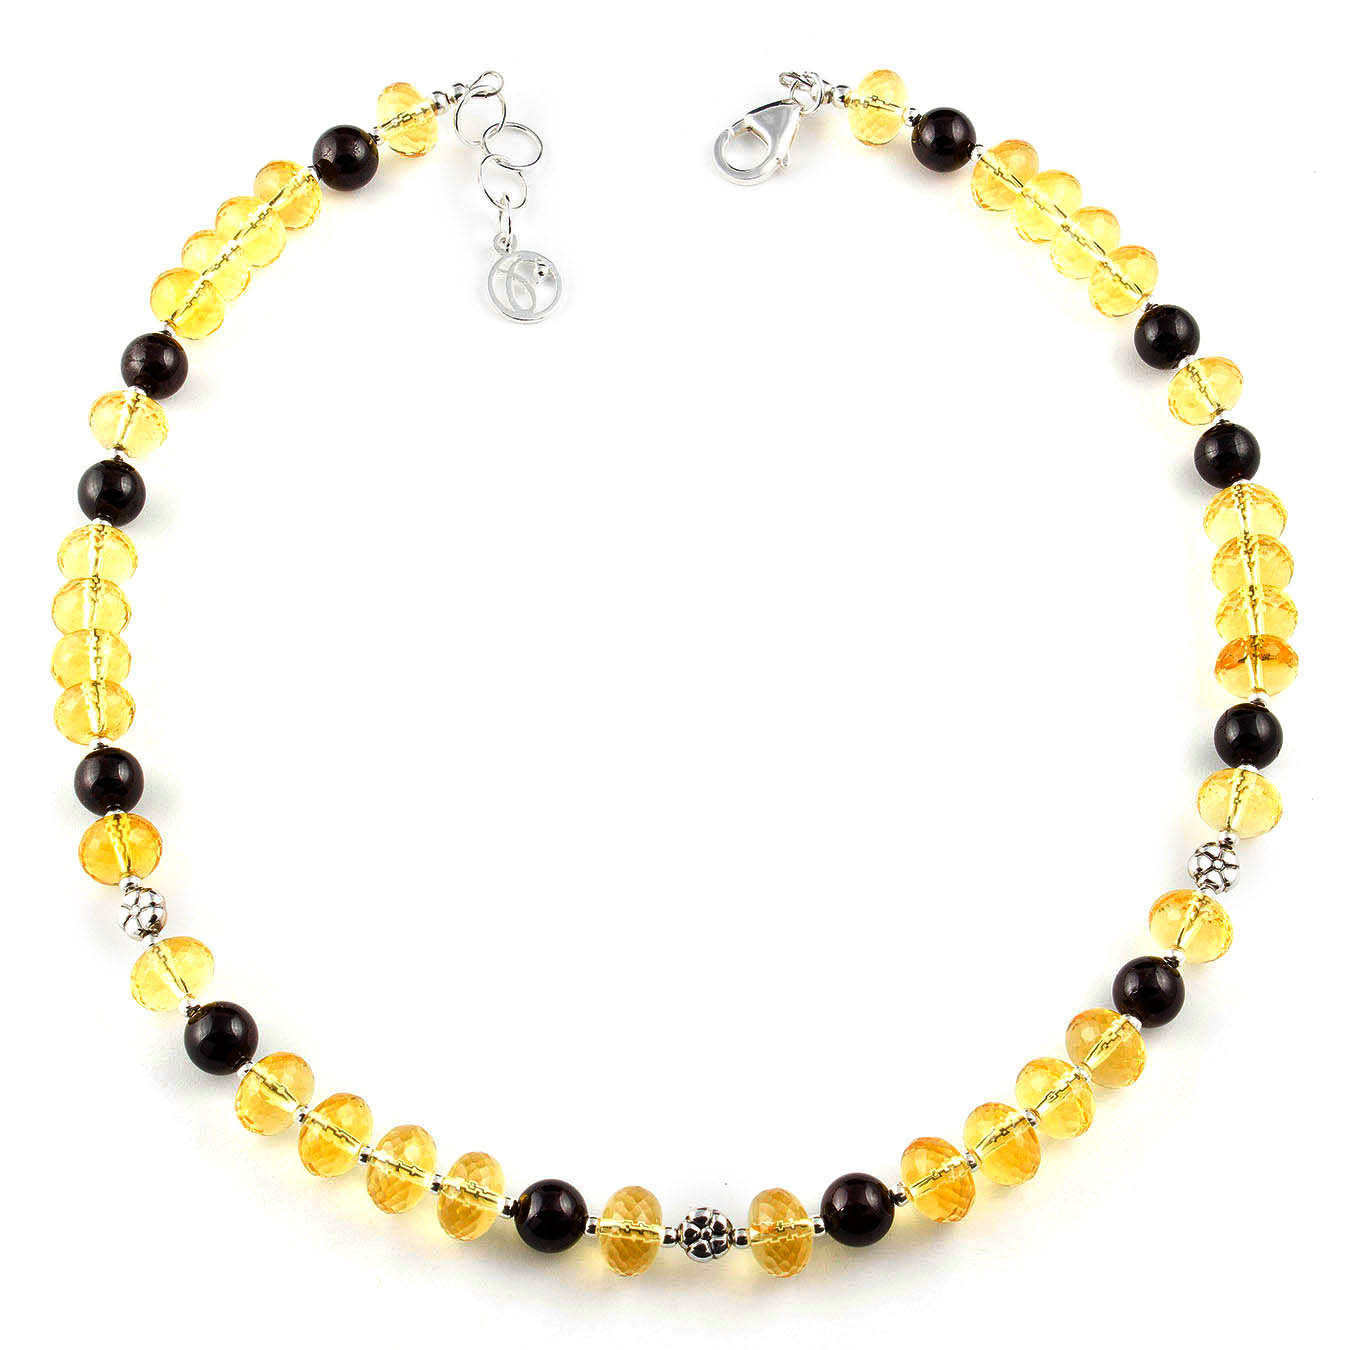 January & November birthstone necklace set made of citrine and garnet